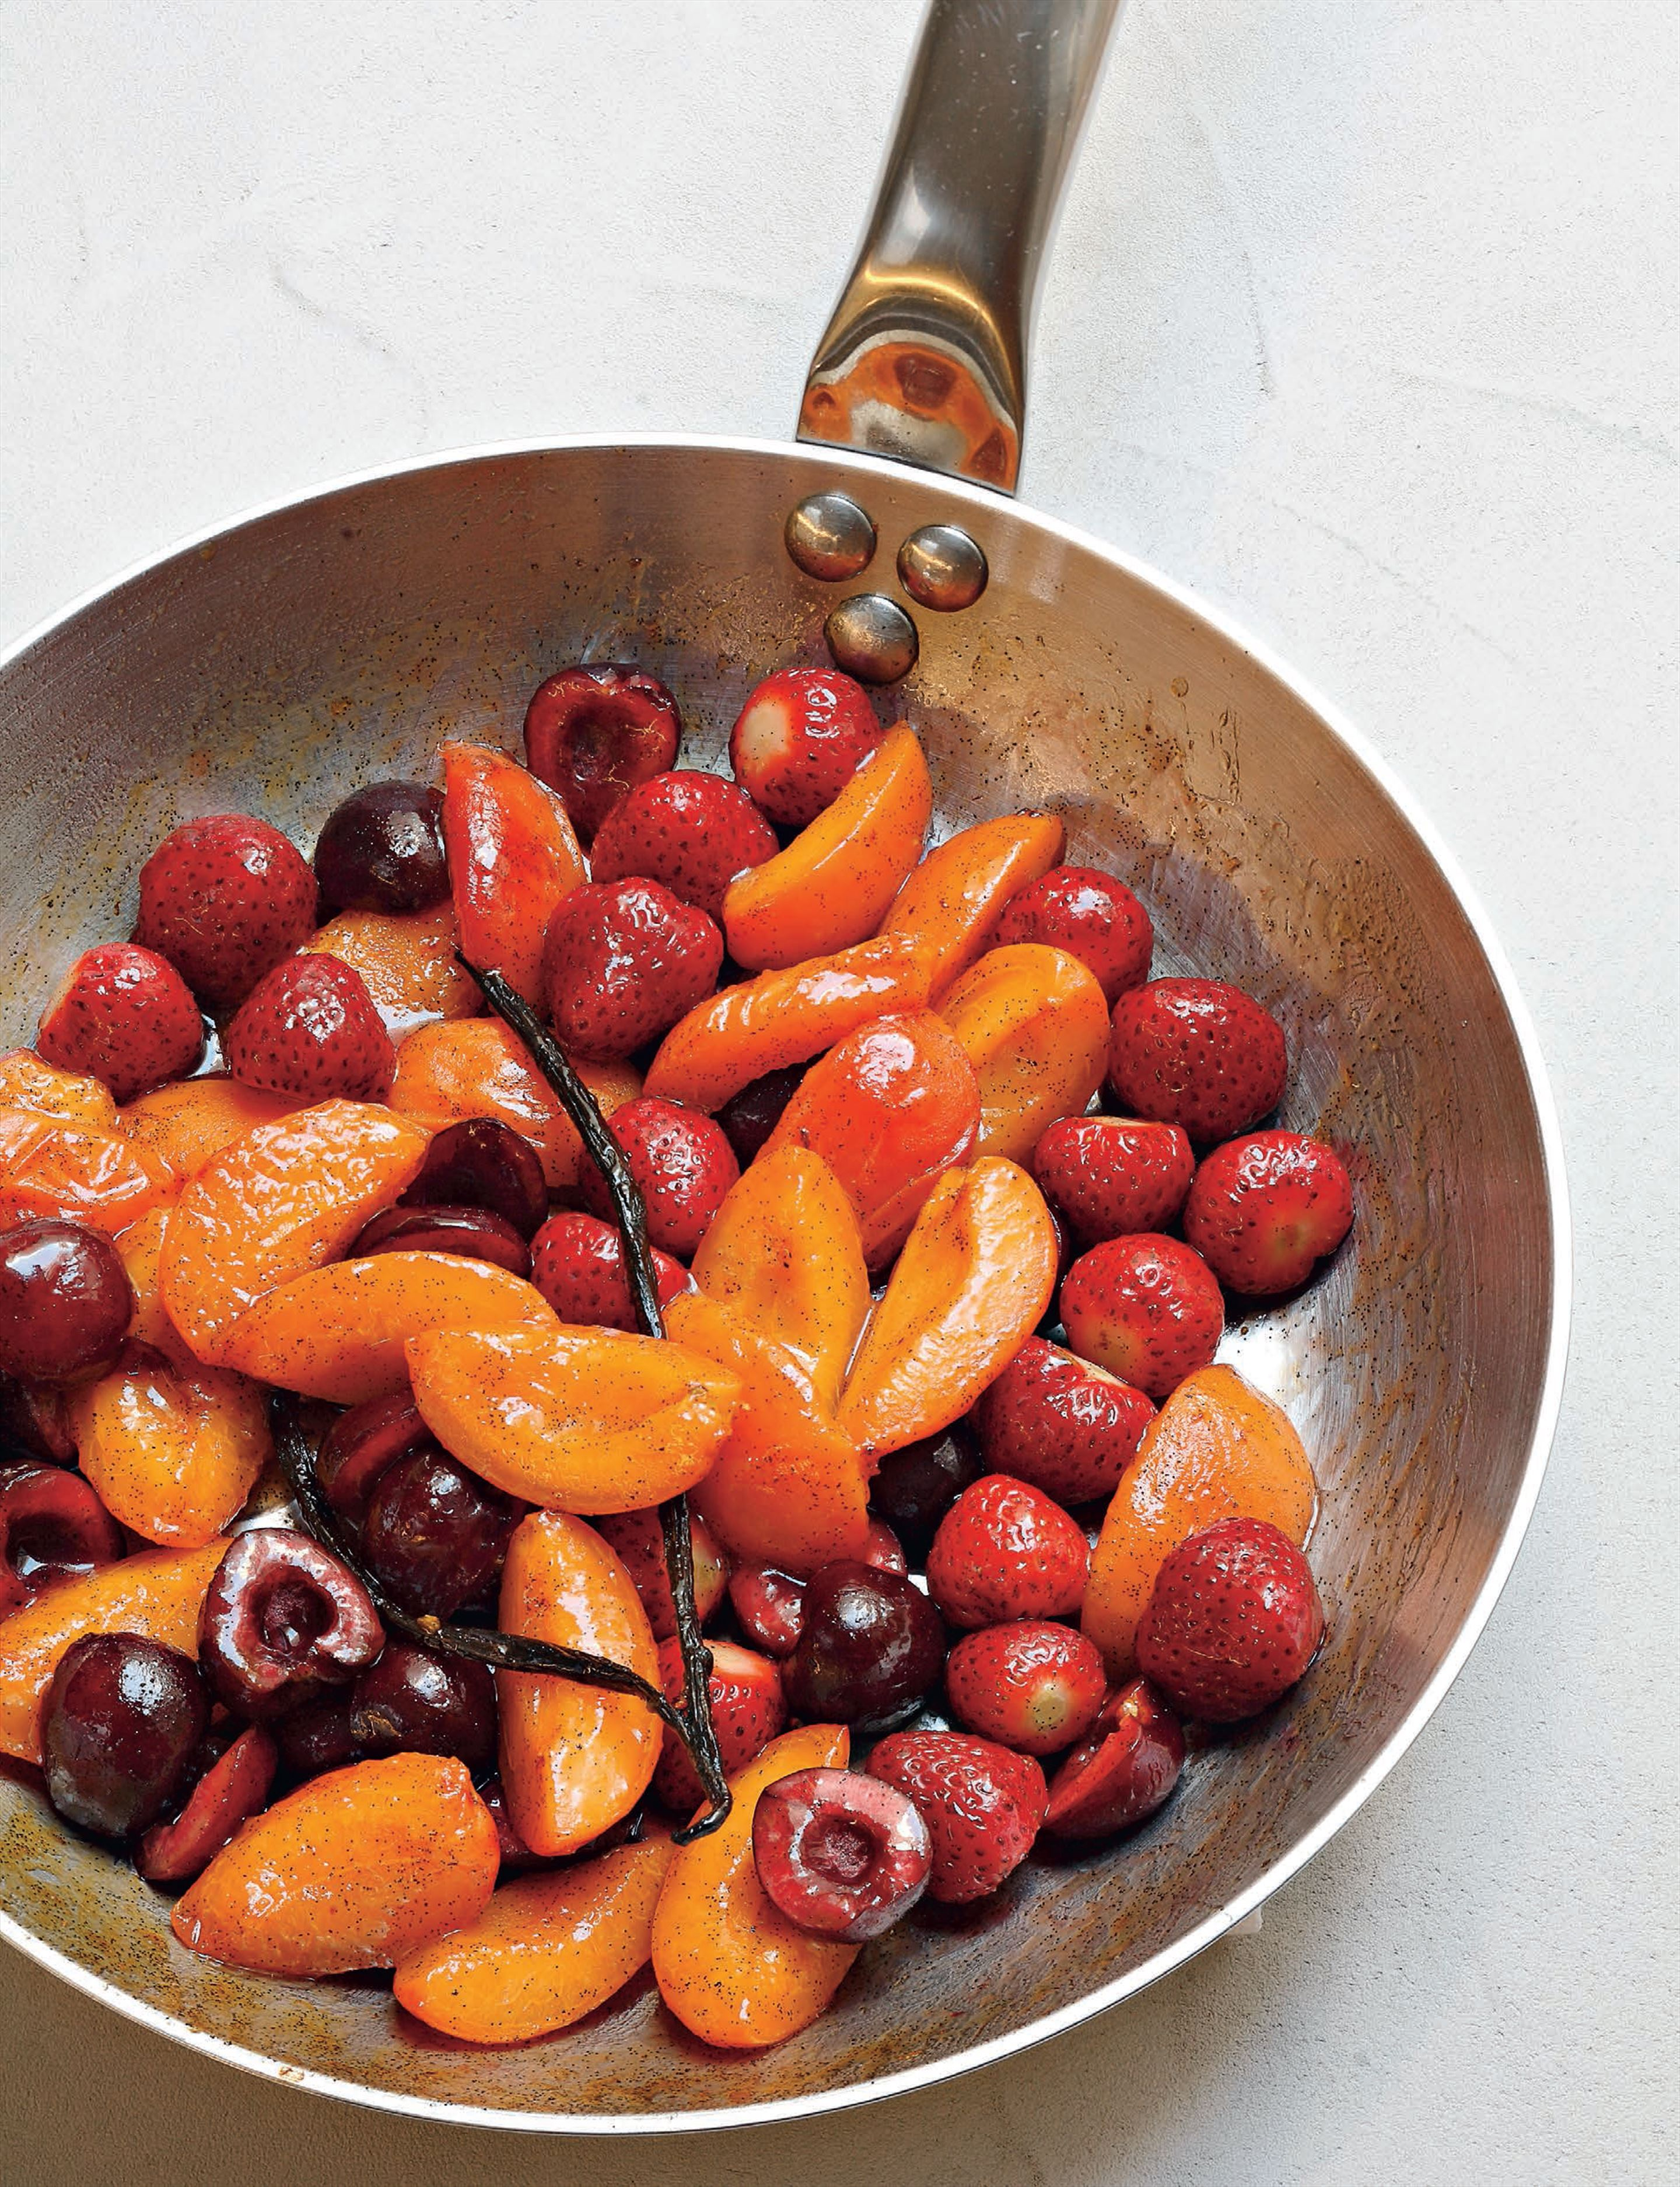 Pan-fried summer or winter fruits